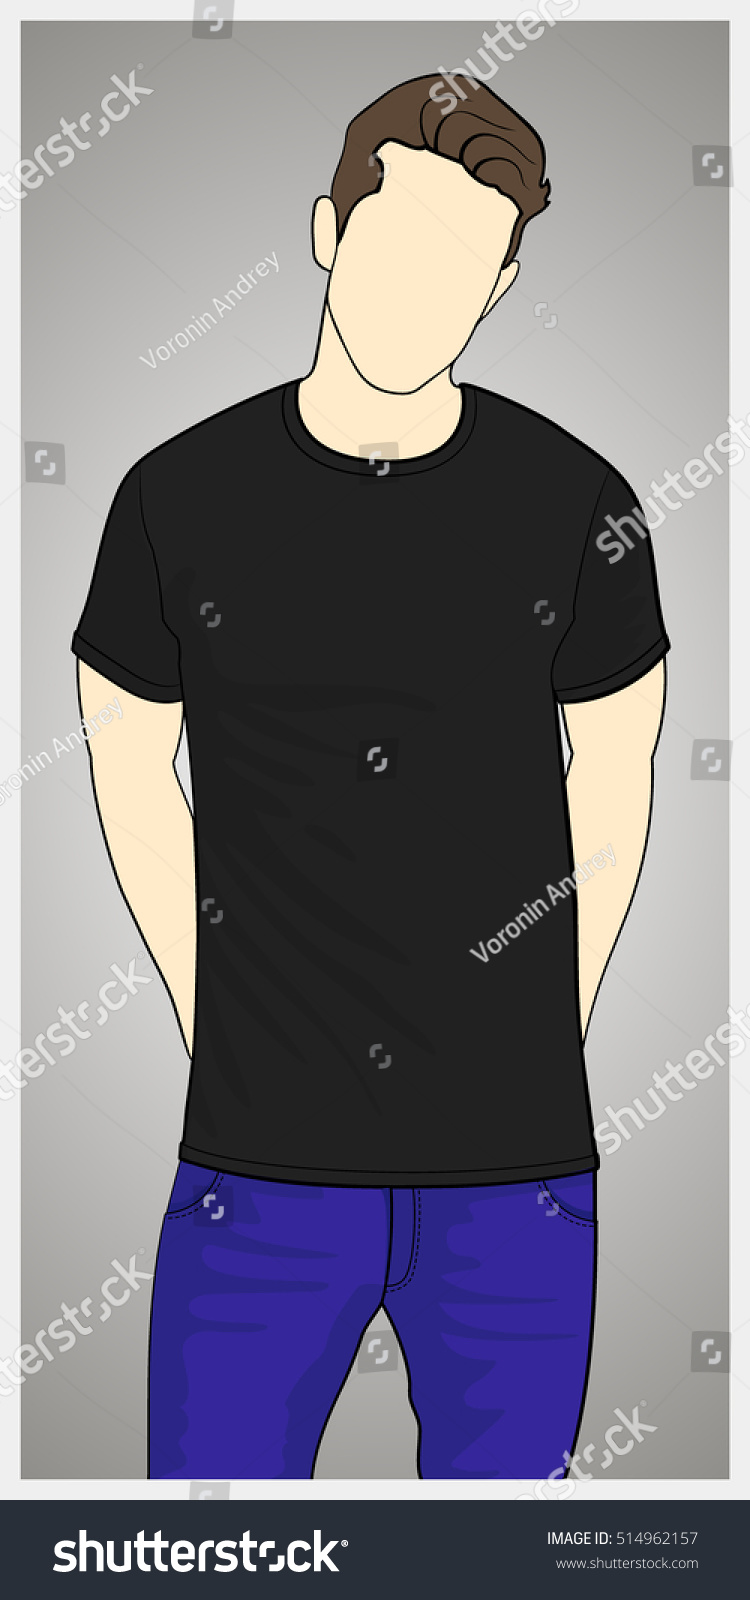 White t shirt eps - T Shirt Template Front View On The Man Man Body Silhouette Black Color